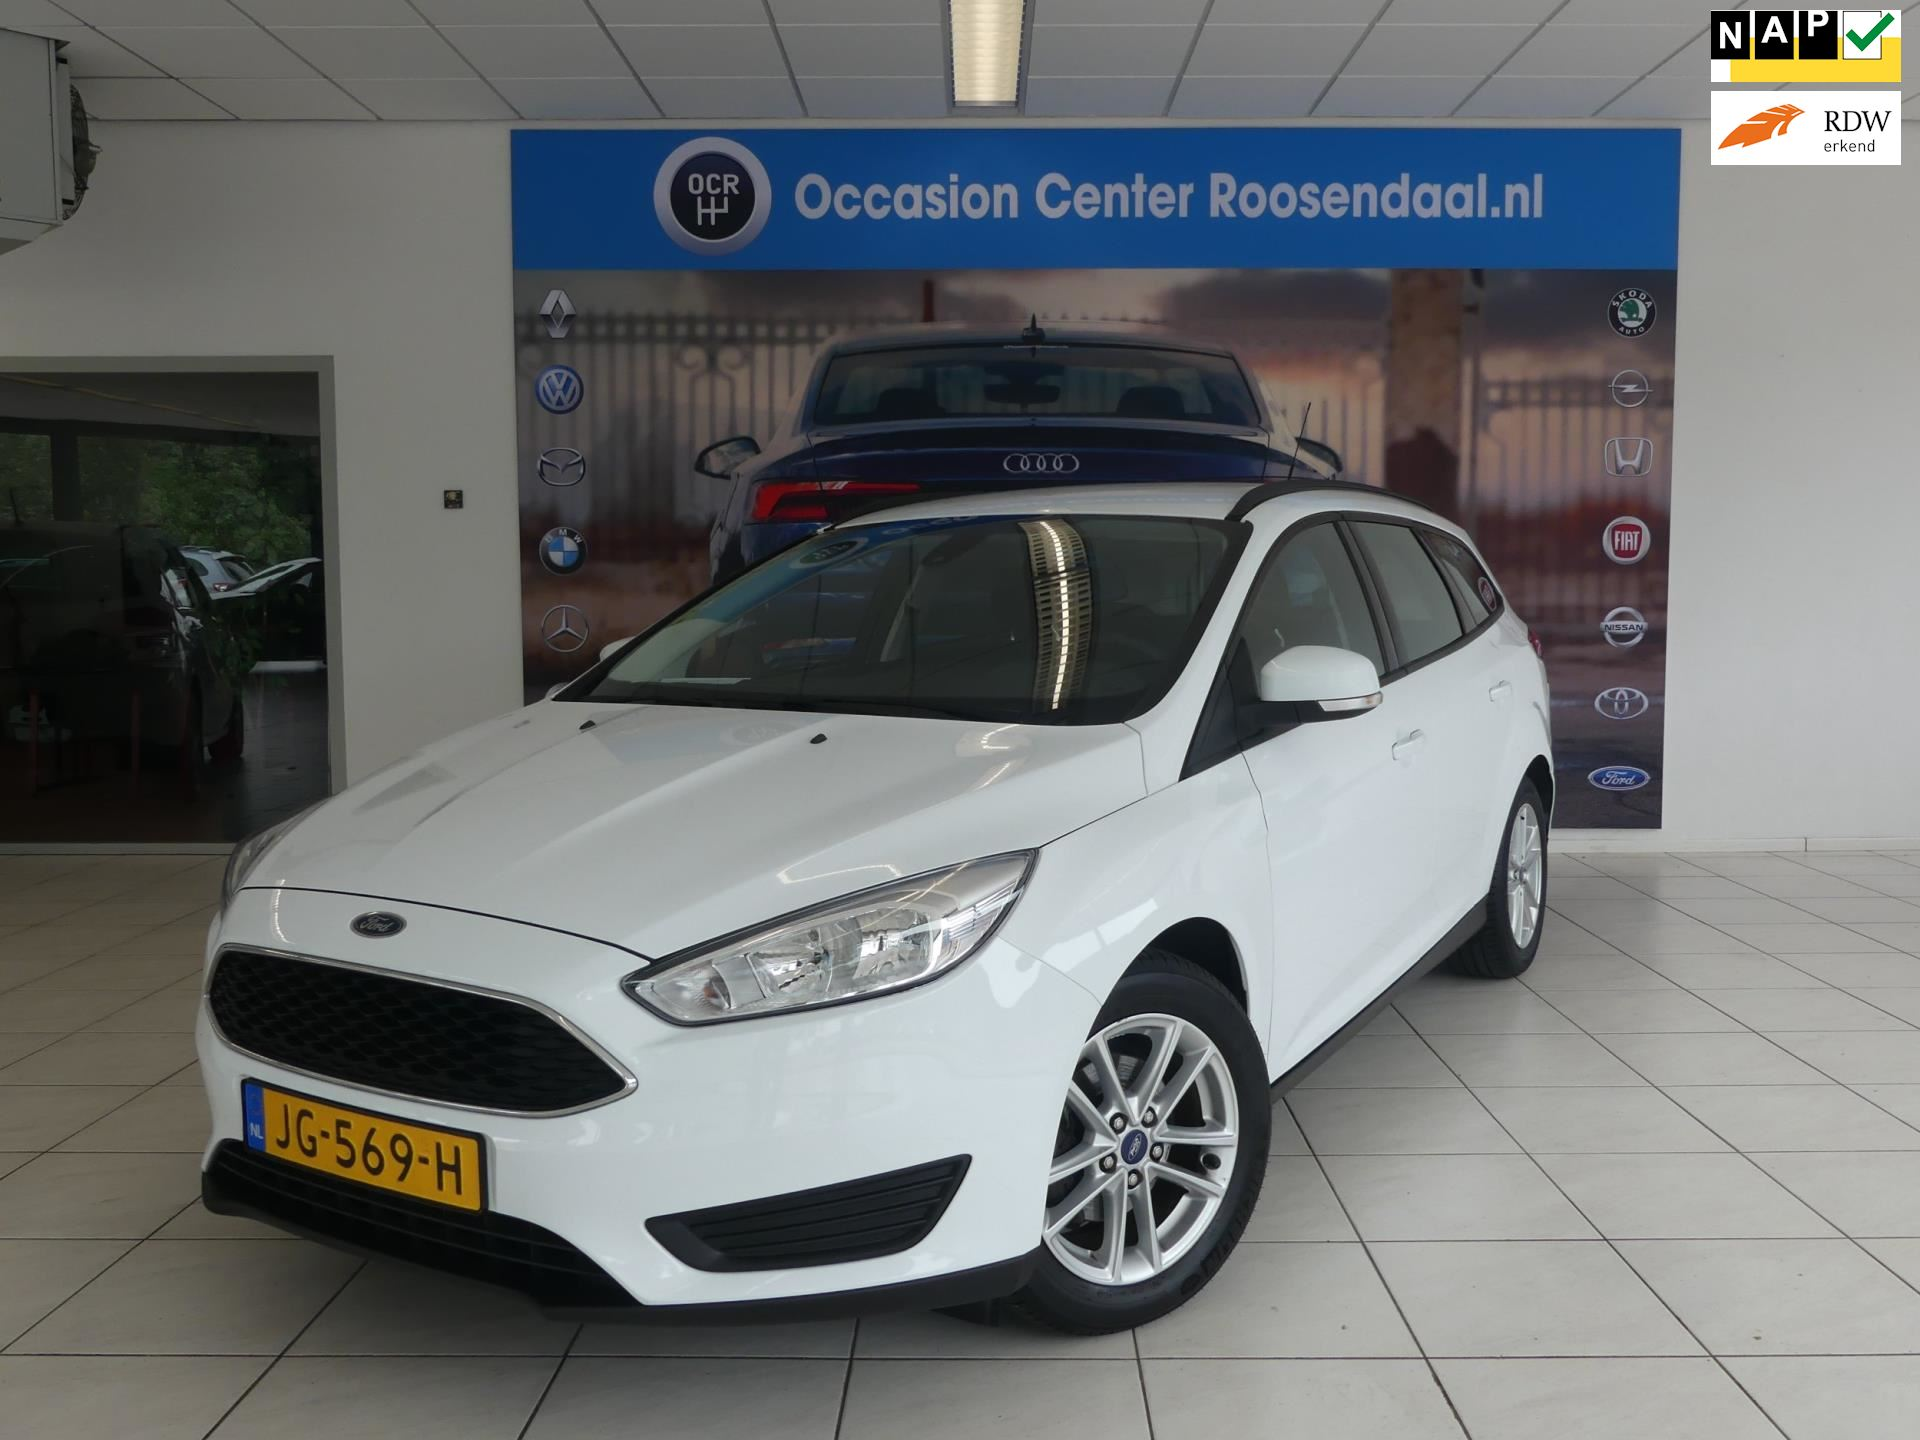 Ford Focus Wagon occasion - Occasion Center Roosendaal